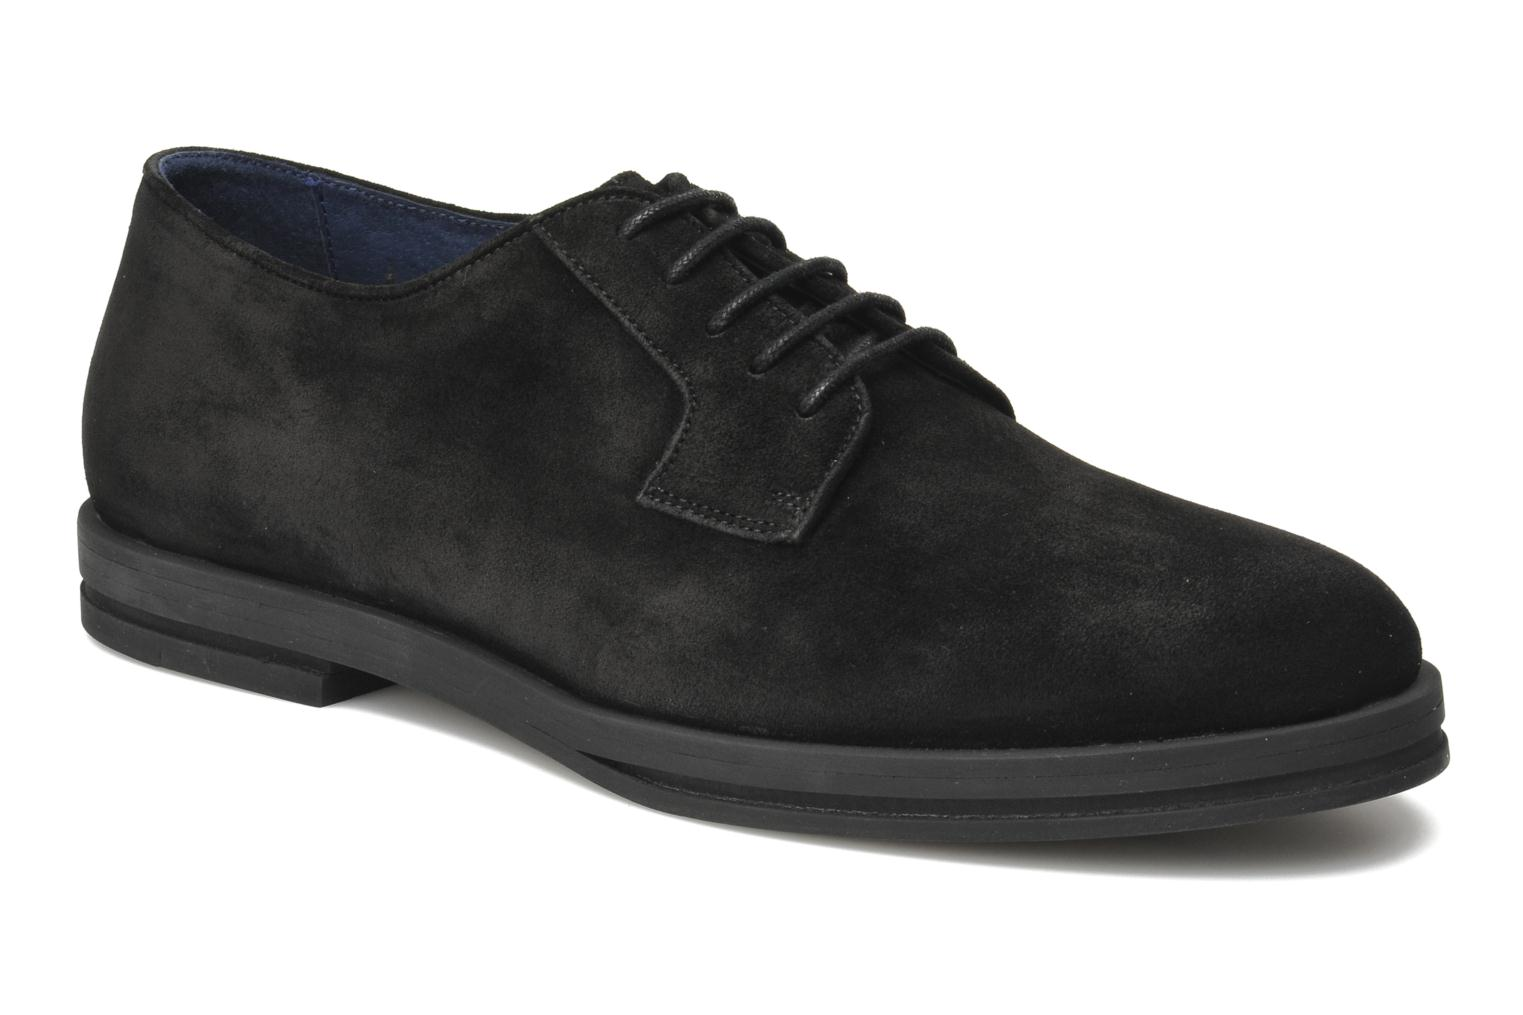 Veterschoenen Alexi lace up oxford by Opening Ceremony